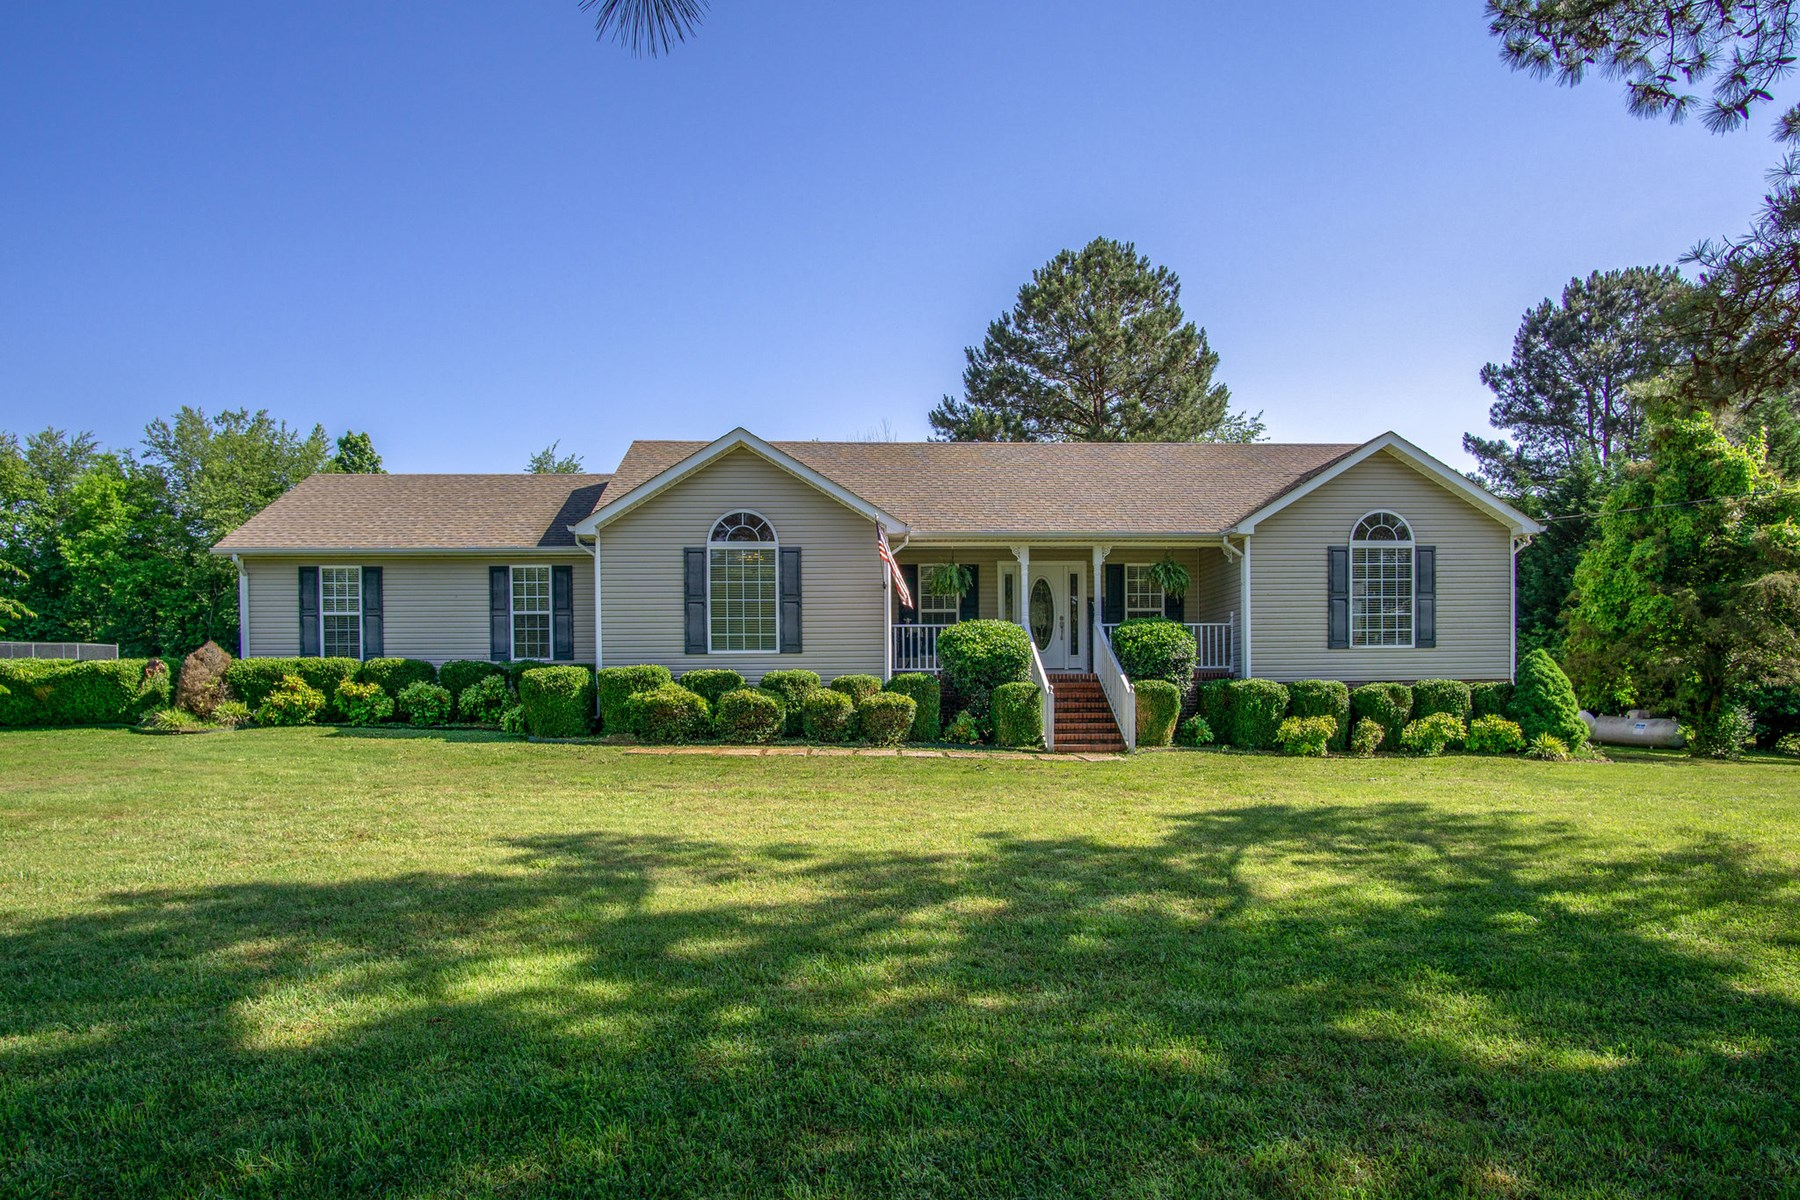 Beautiful Home with Acreage in Lawrence County Tennessee